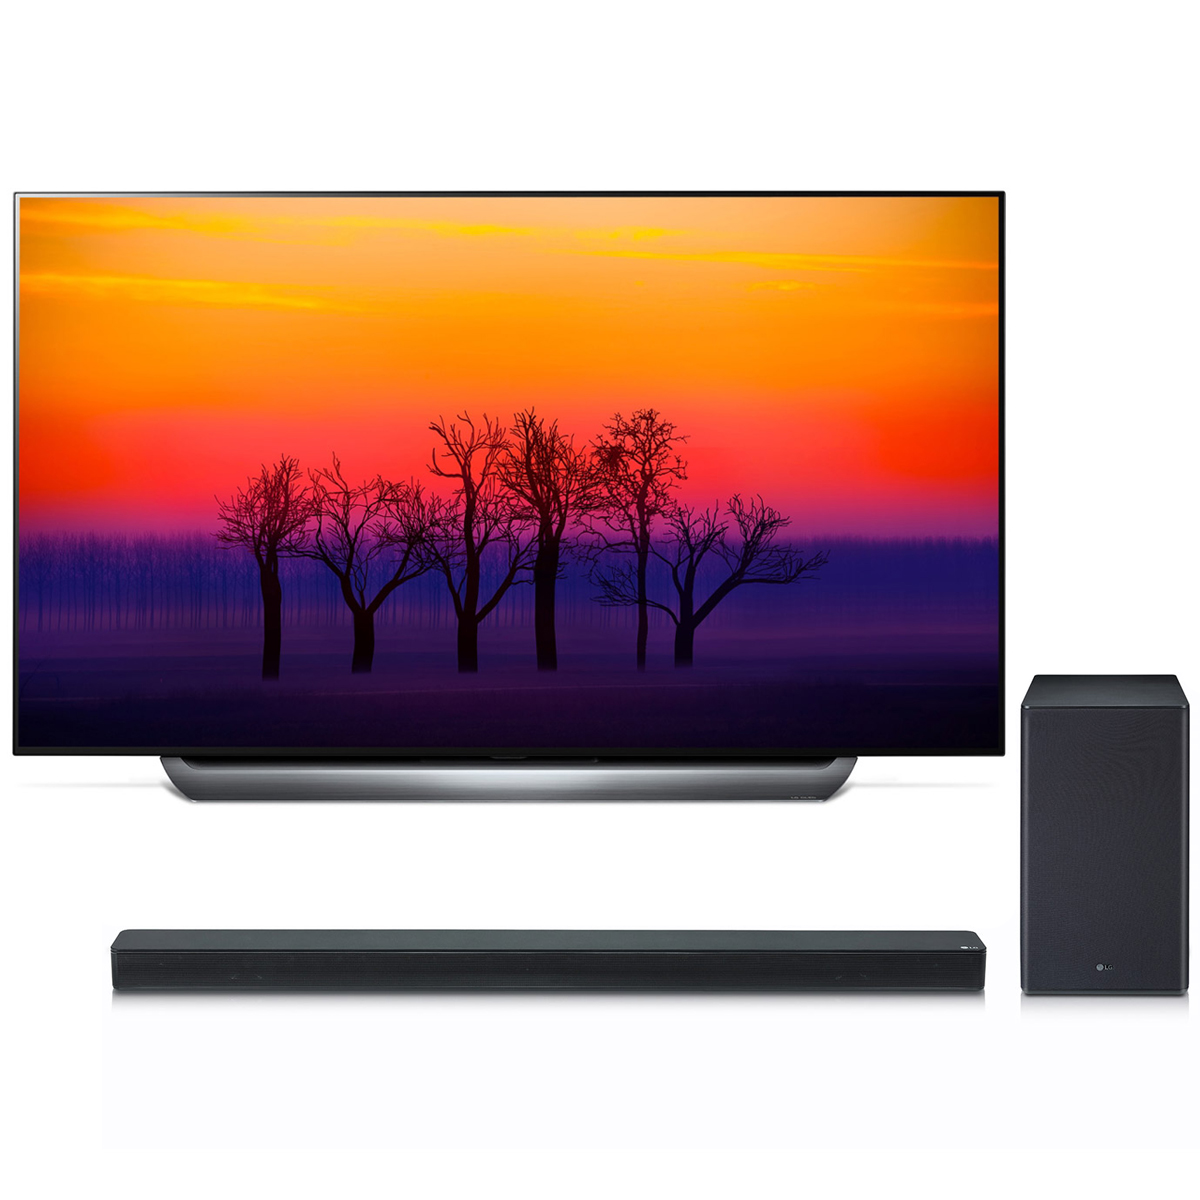 "TV LG OLED65C8 + SK8 Téléviseur OLED 4K 65"" (165 cm) 16/9 - 3840 x 2160 pixels - Ultra HD 2160p - HDR - Wi-Fi - Bluetooth - Dolby Atmos (dalle native 100 Hz) + Barre de son 2.1 360 Watts"